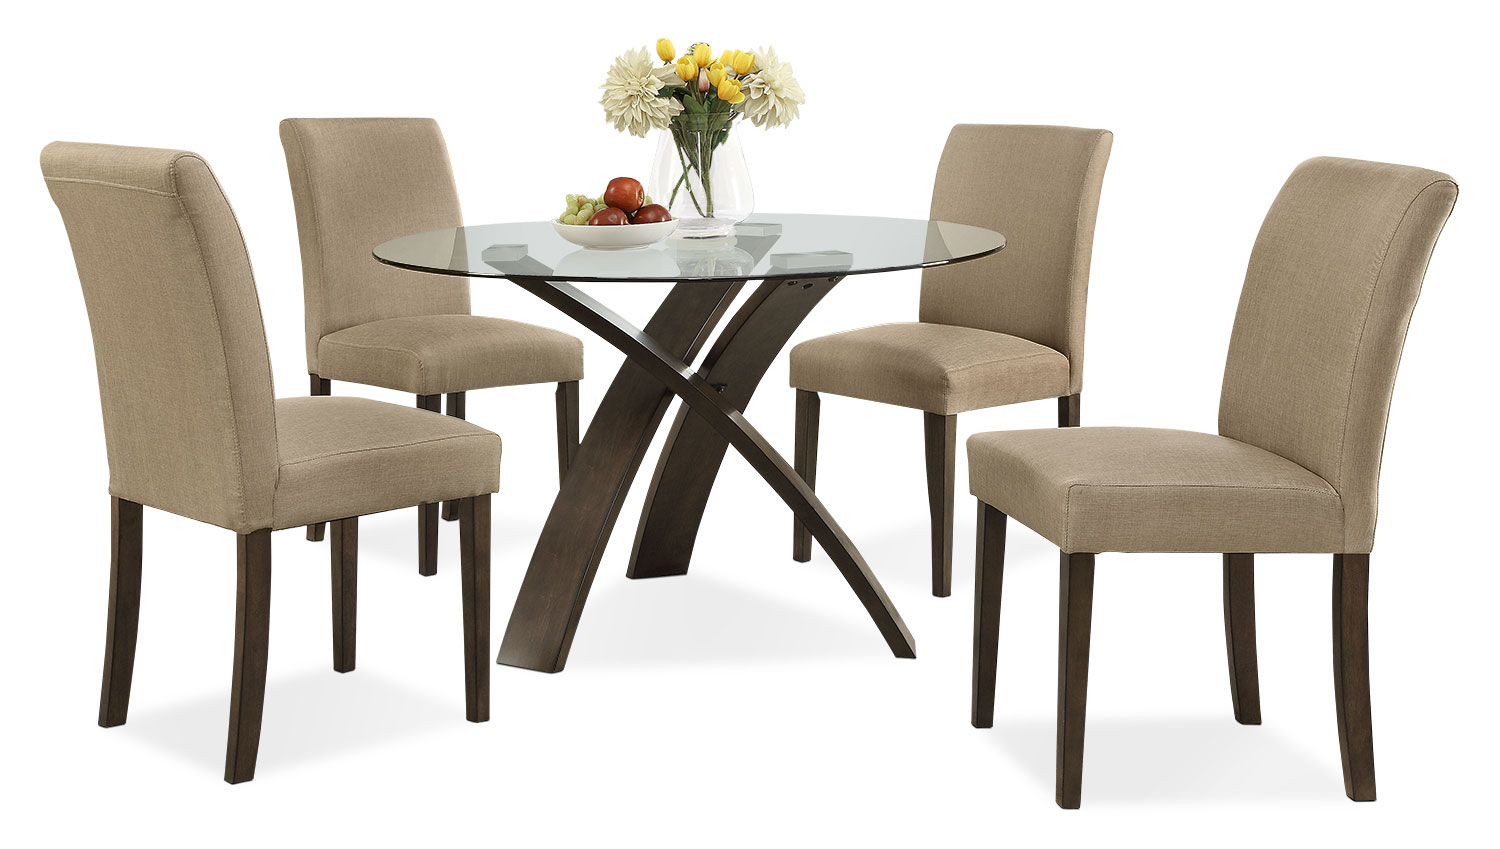 Skye 5-Piece Dining Package – Beige